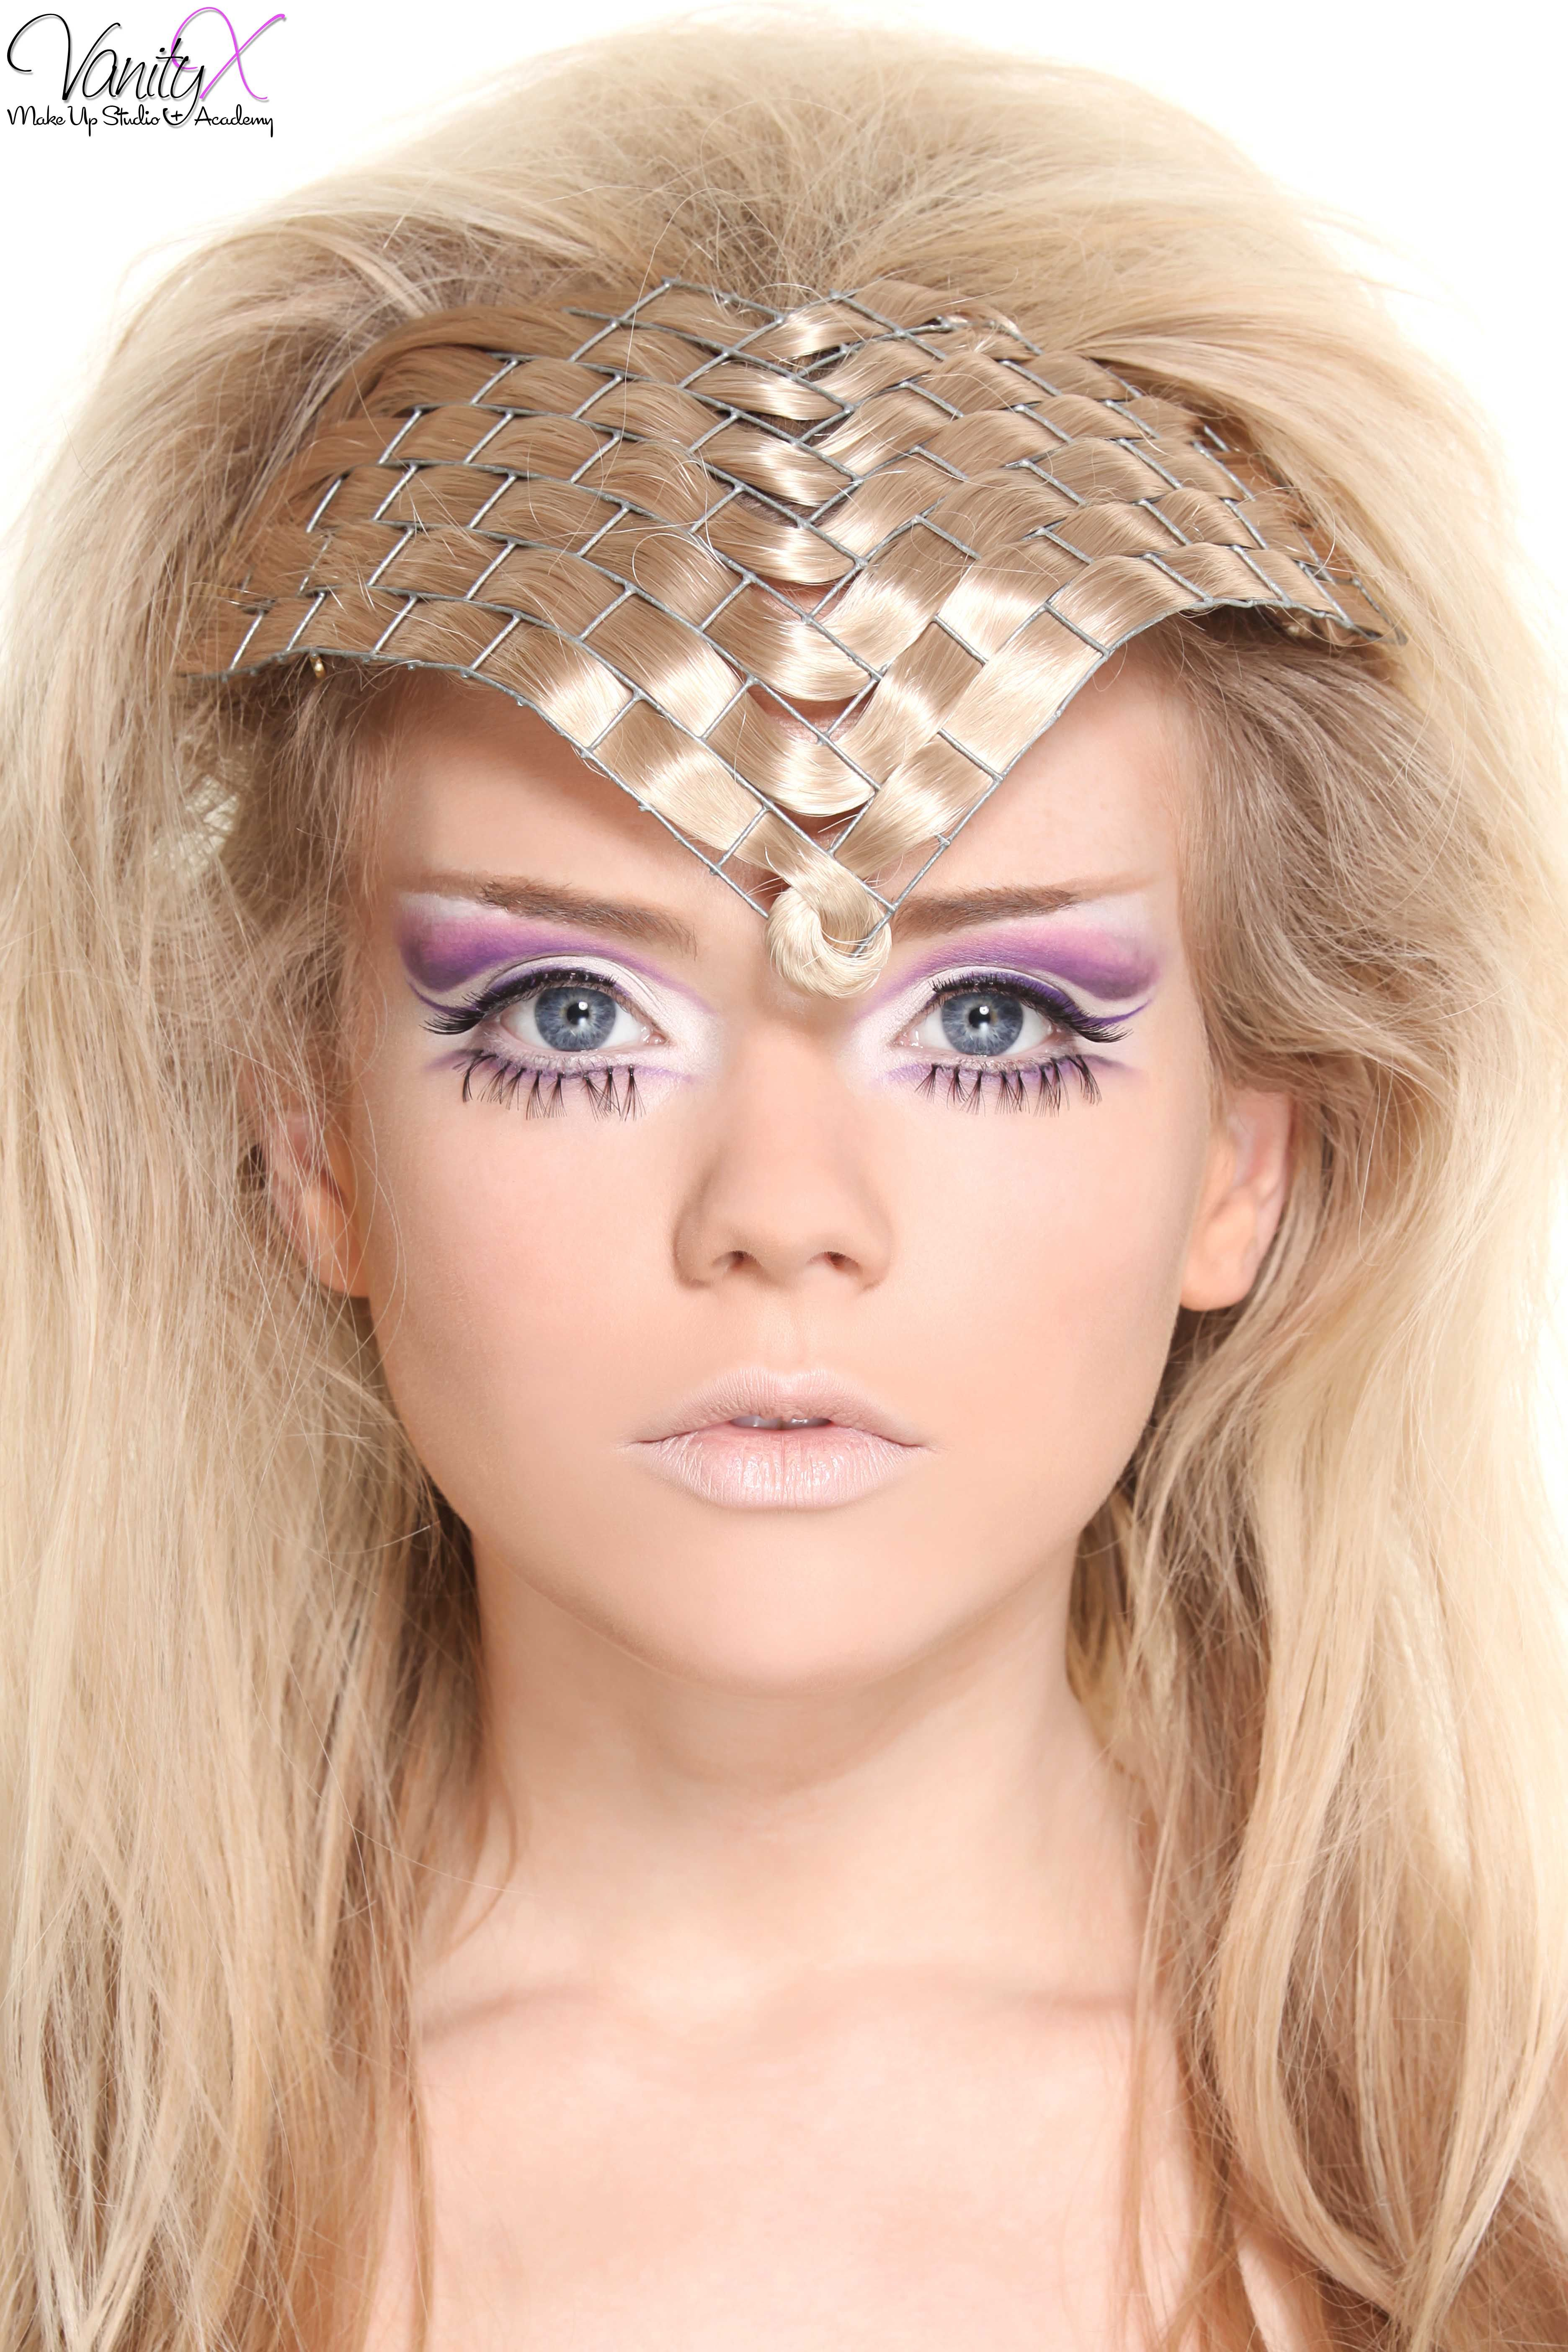 creative look by one of our students from our advanced makeup